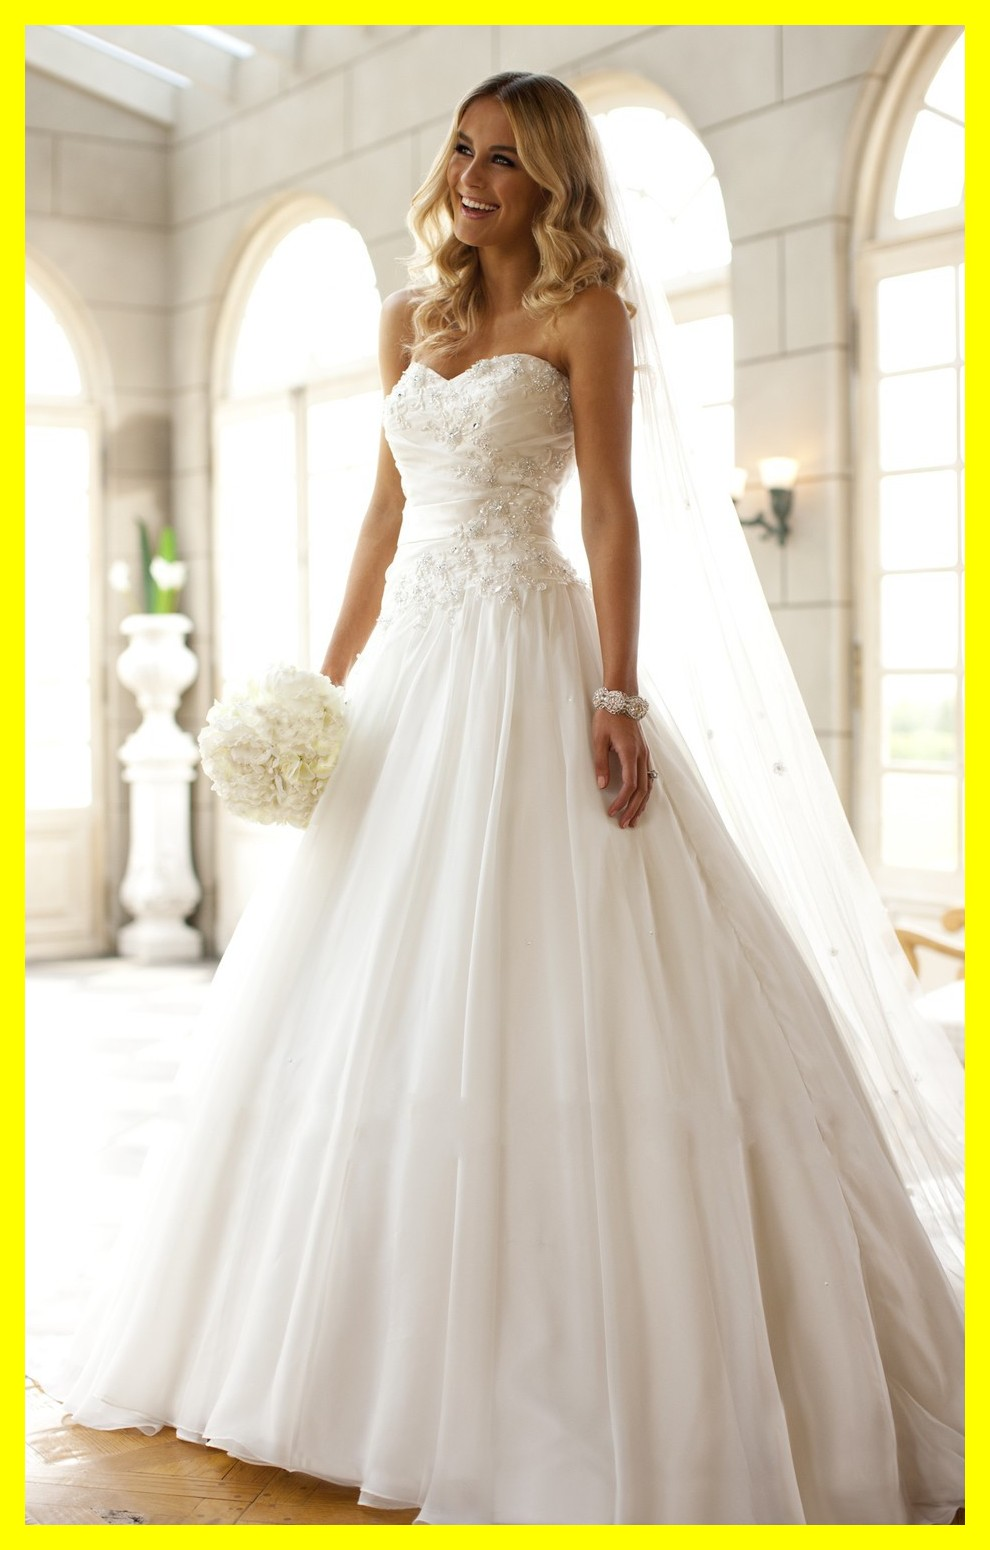 Wedding dresses for petite brides white and red to hire for Best wedding dresses for petites